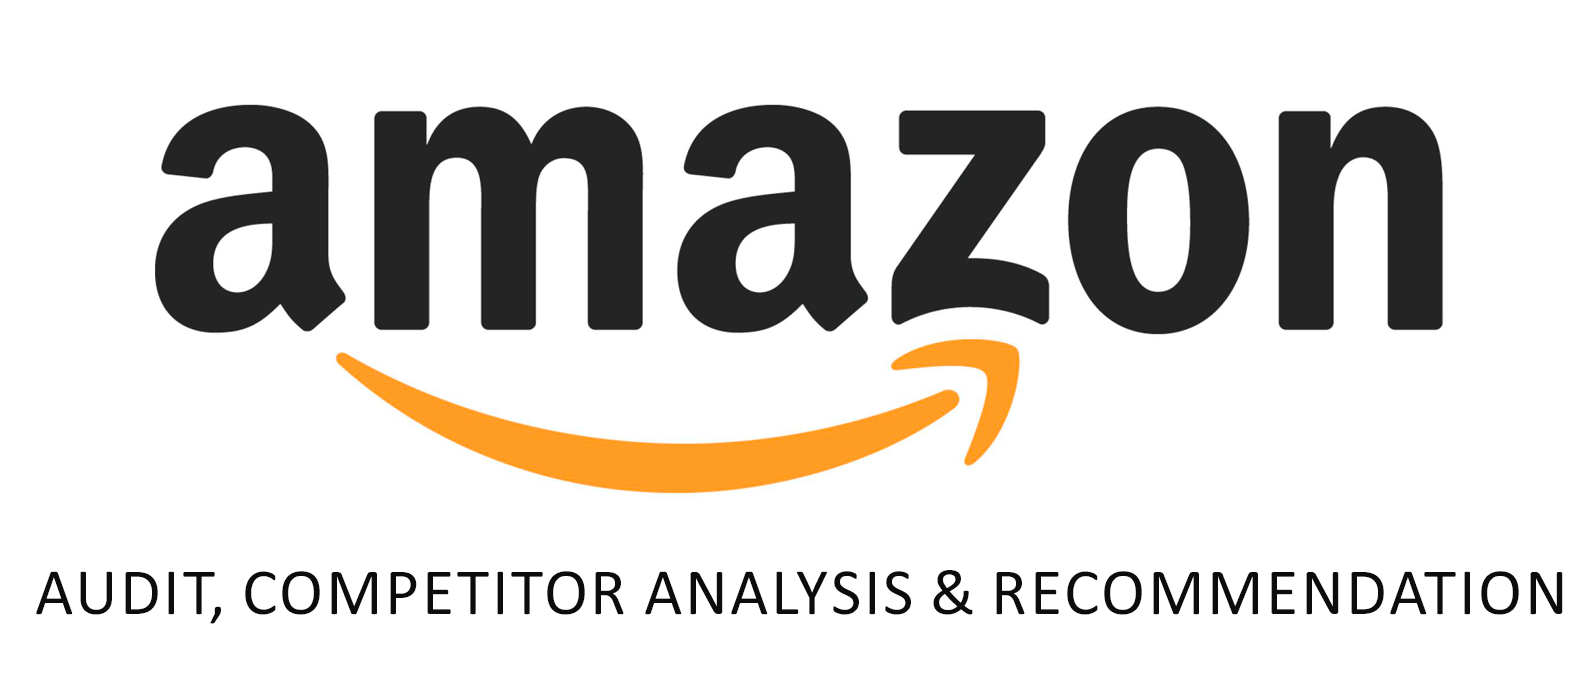 amazon analysis report On this page, you can find information about reports on your fulfillment by amazon (fba) inventory, including detailed events, adjustments, and.